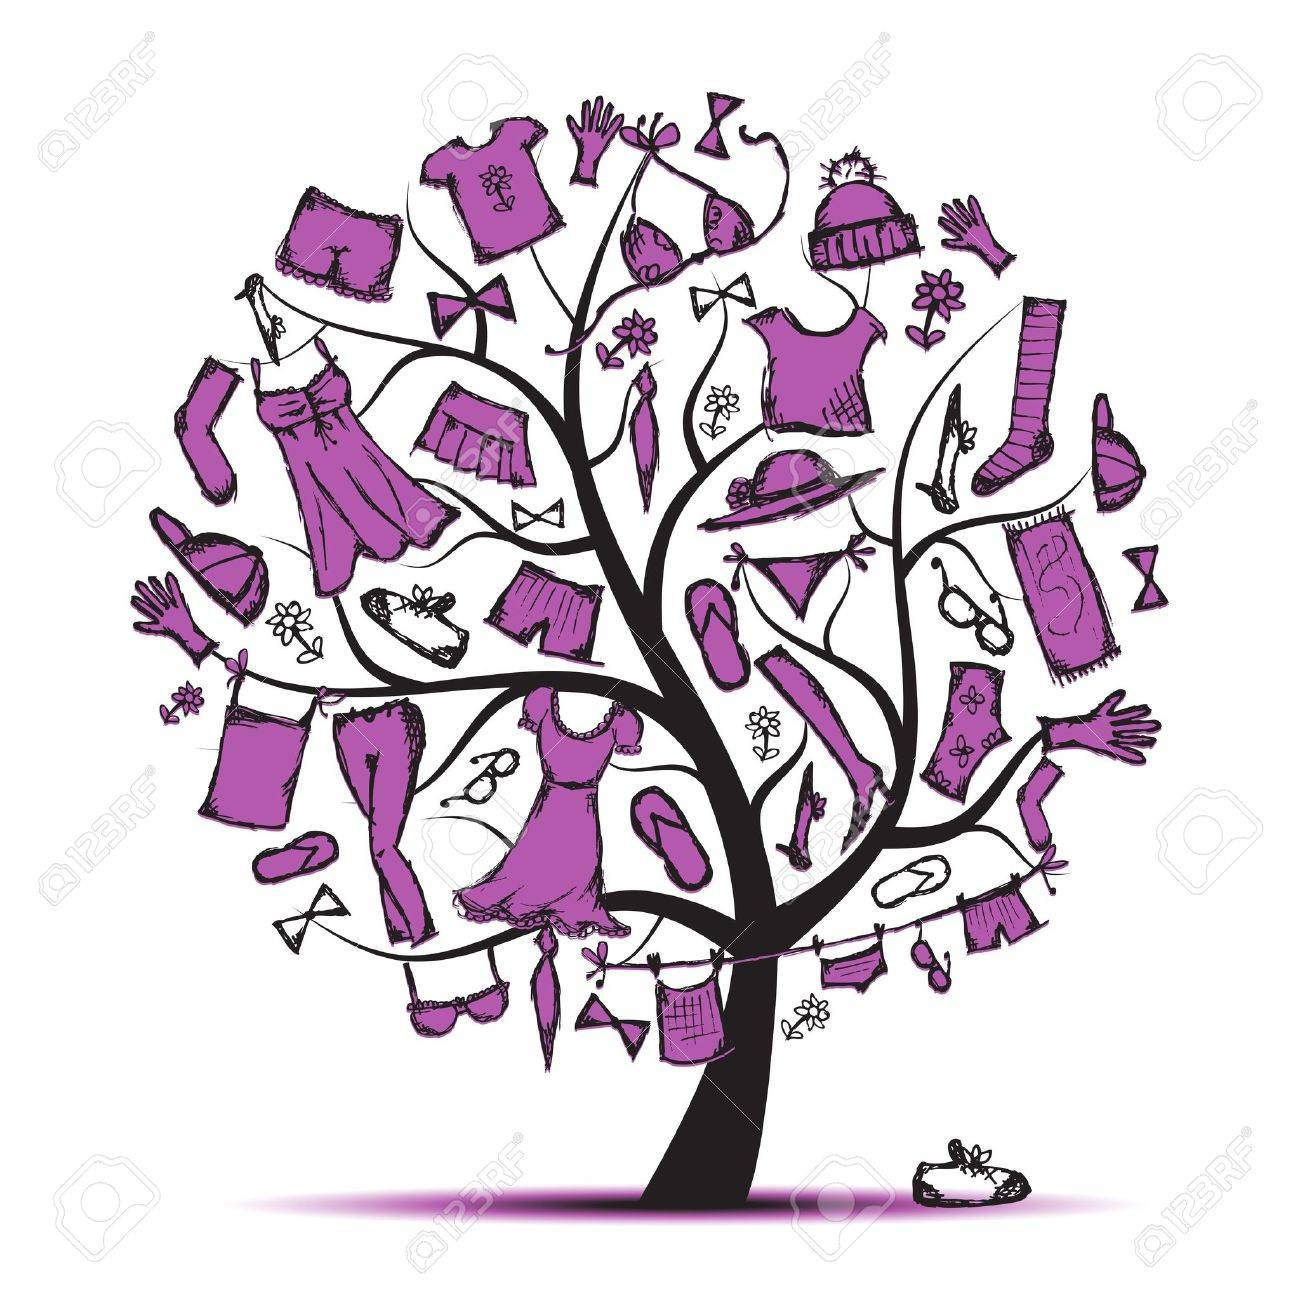 wardrobe clothes on tree for your design stock vector